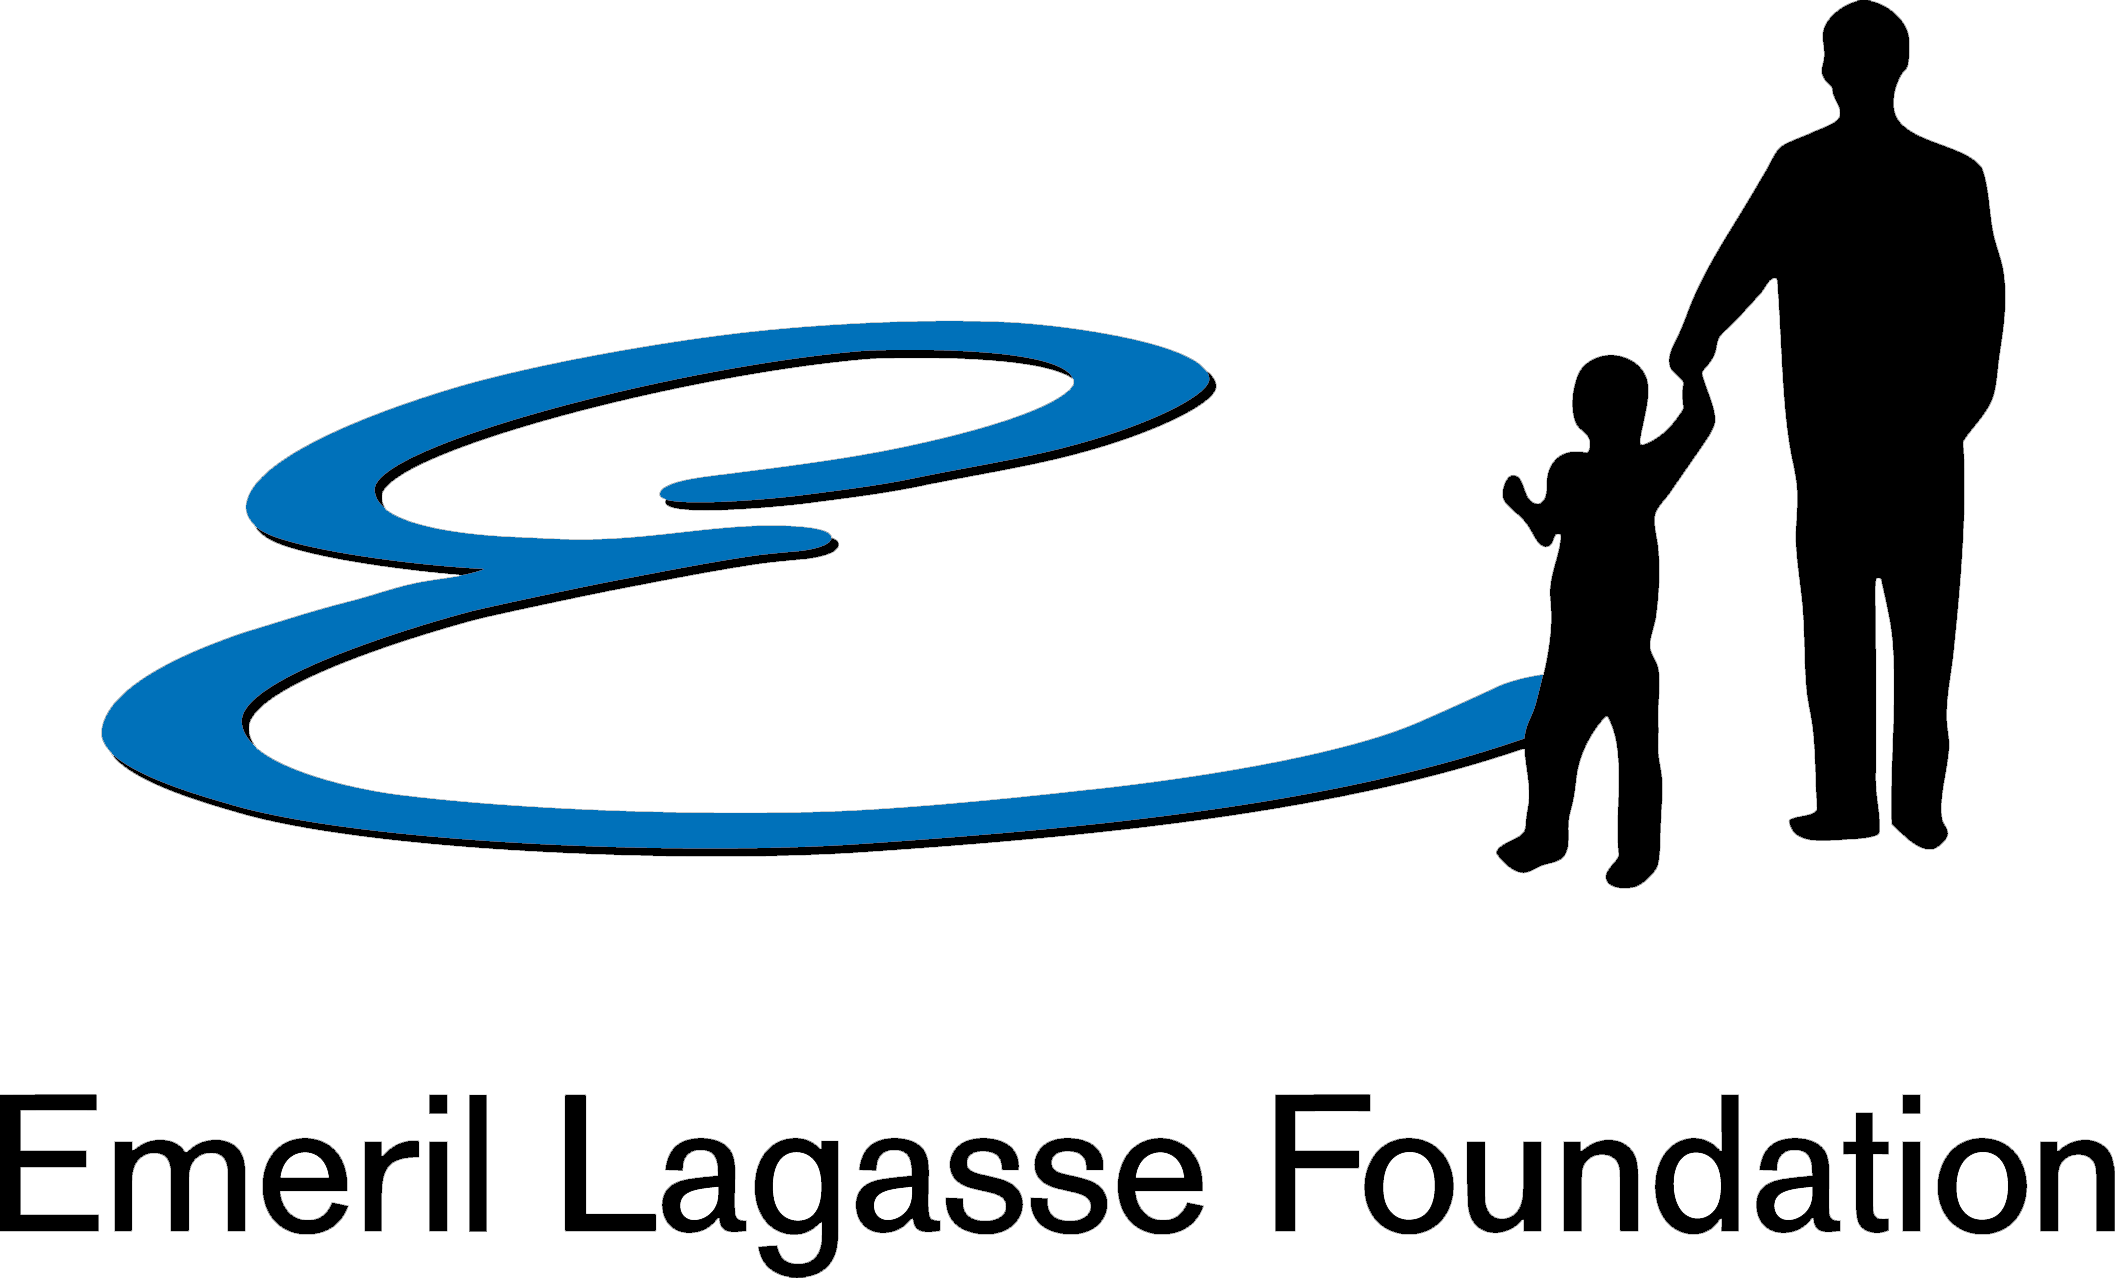 Volunteering clipart youth empowerment. Projectemeril lagasse foundation project